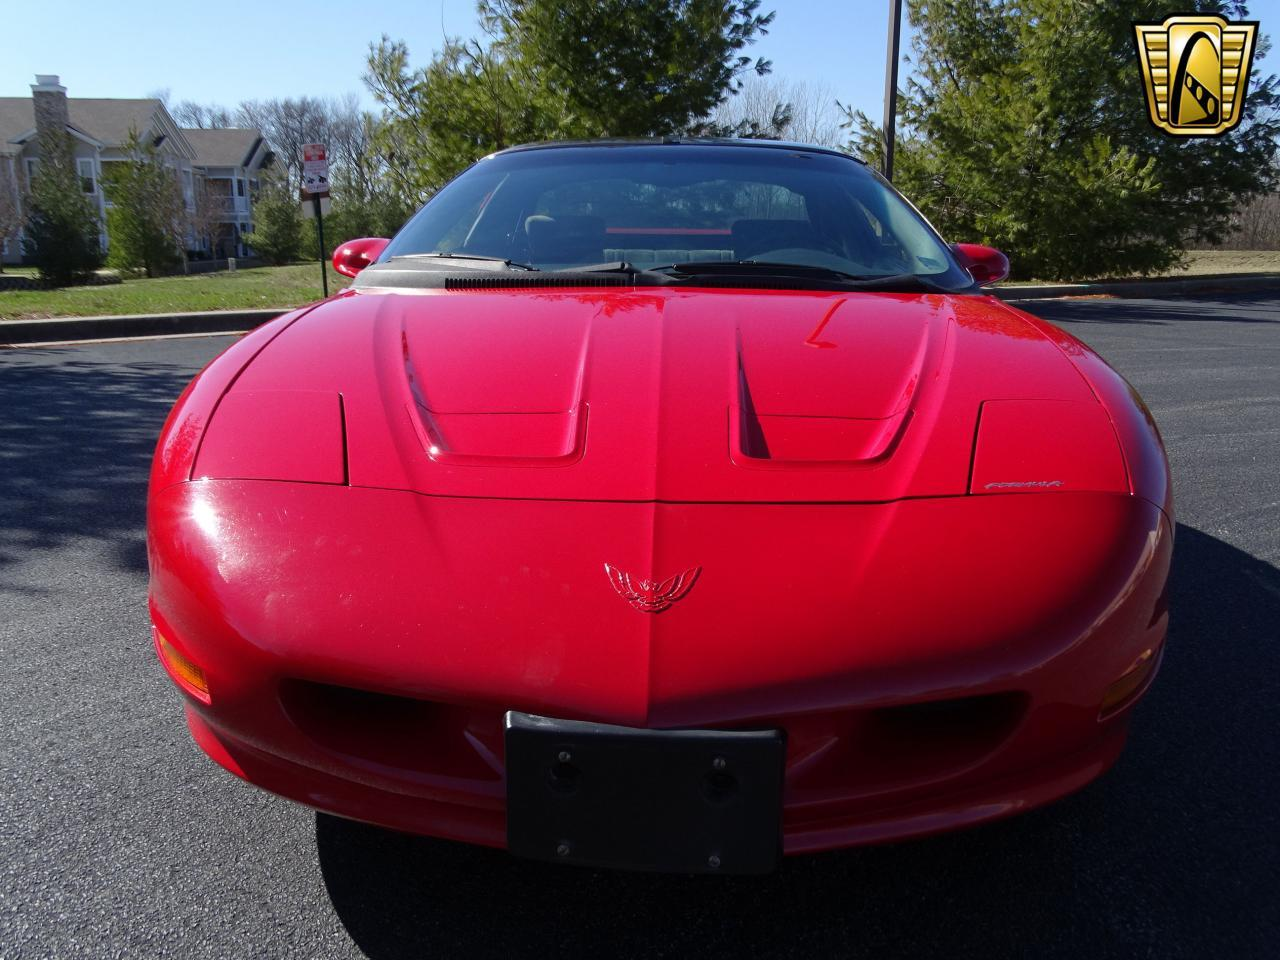 Large Picture of '96 Pontiac Firebird located in Illinois - $8,995.00 Offered by Gateway Classic Cars - St. Louis - MZF9